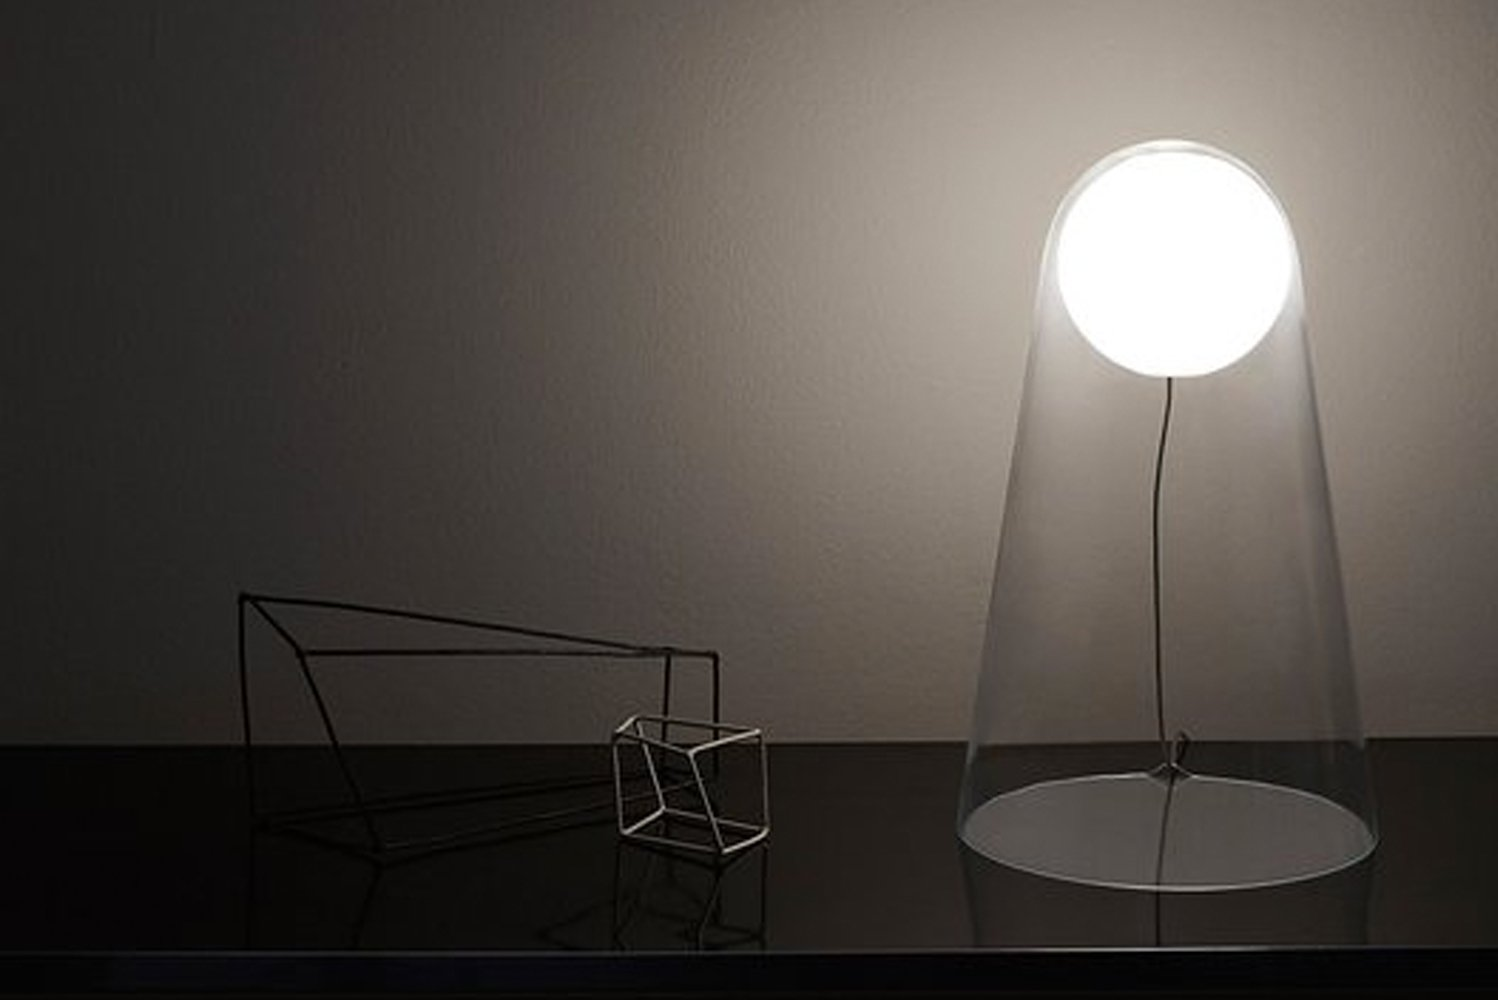 Satellight has a LED lamp containing a milky white diffuser that is encapsulated inside a clear piece of glass.